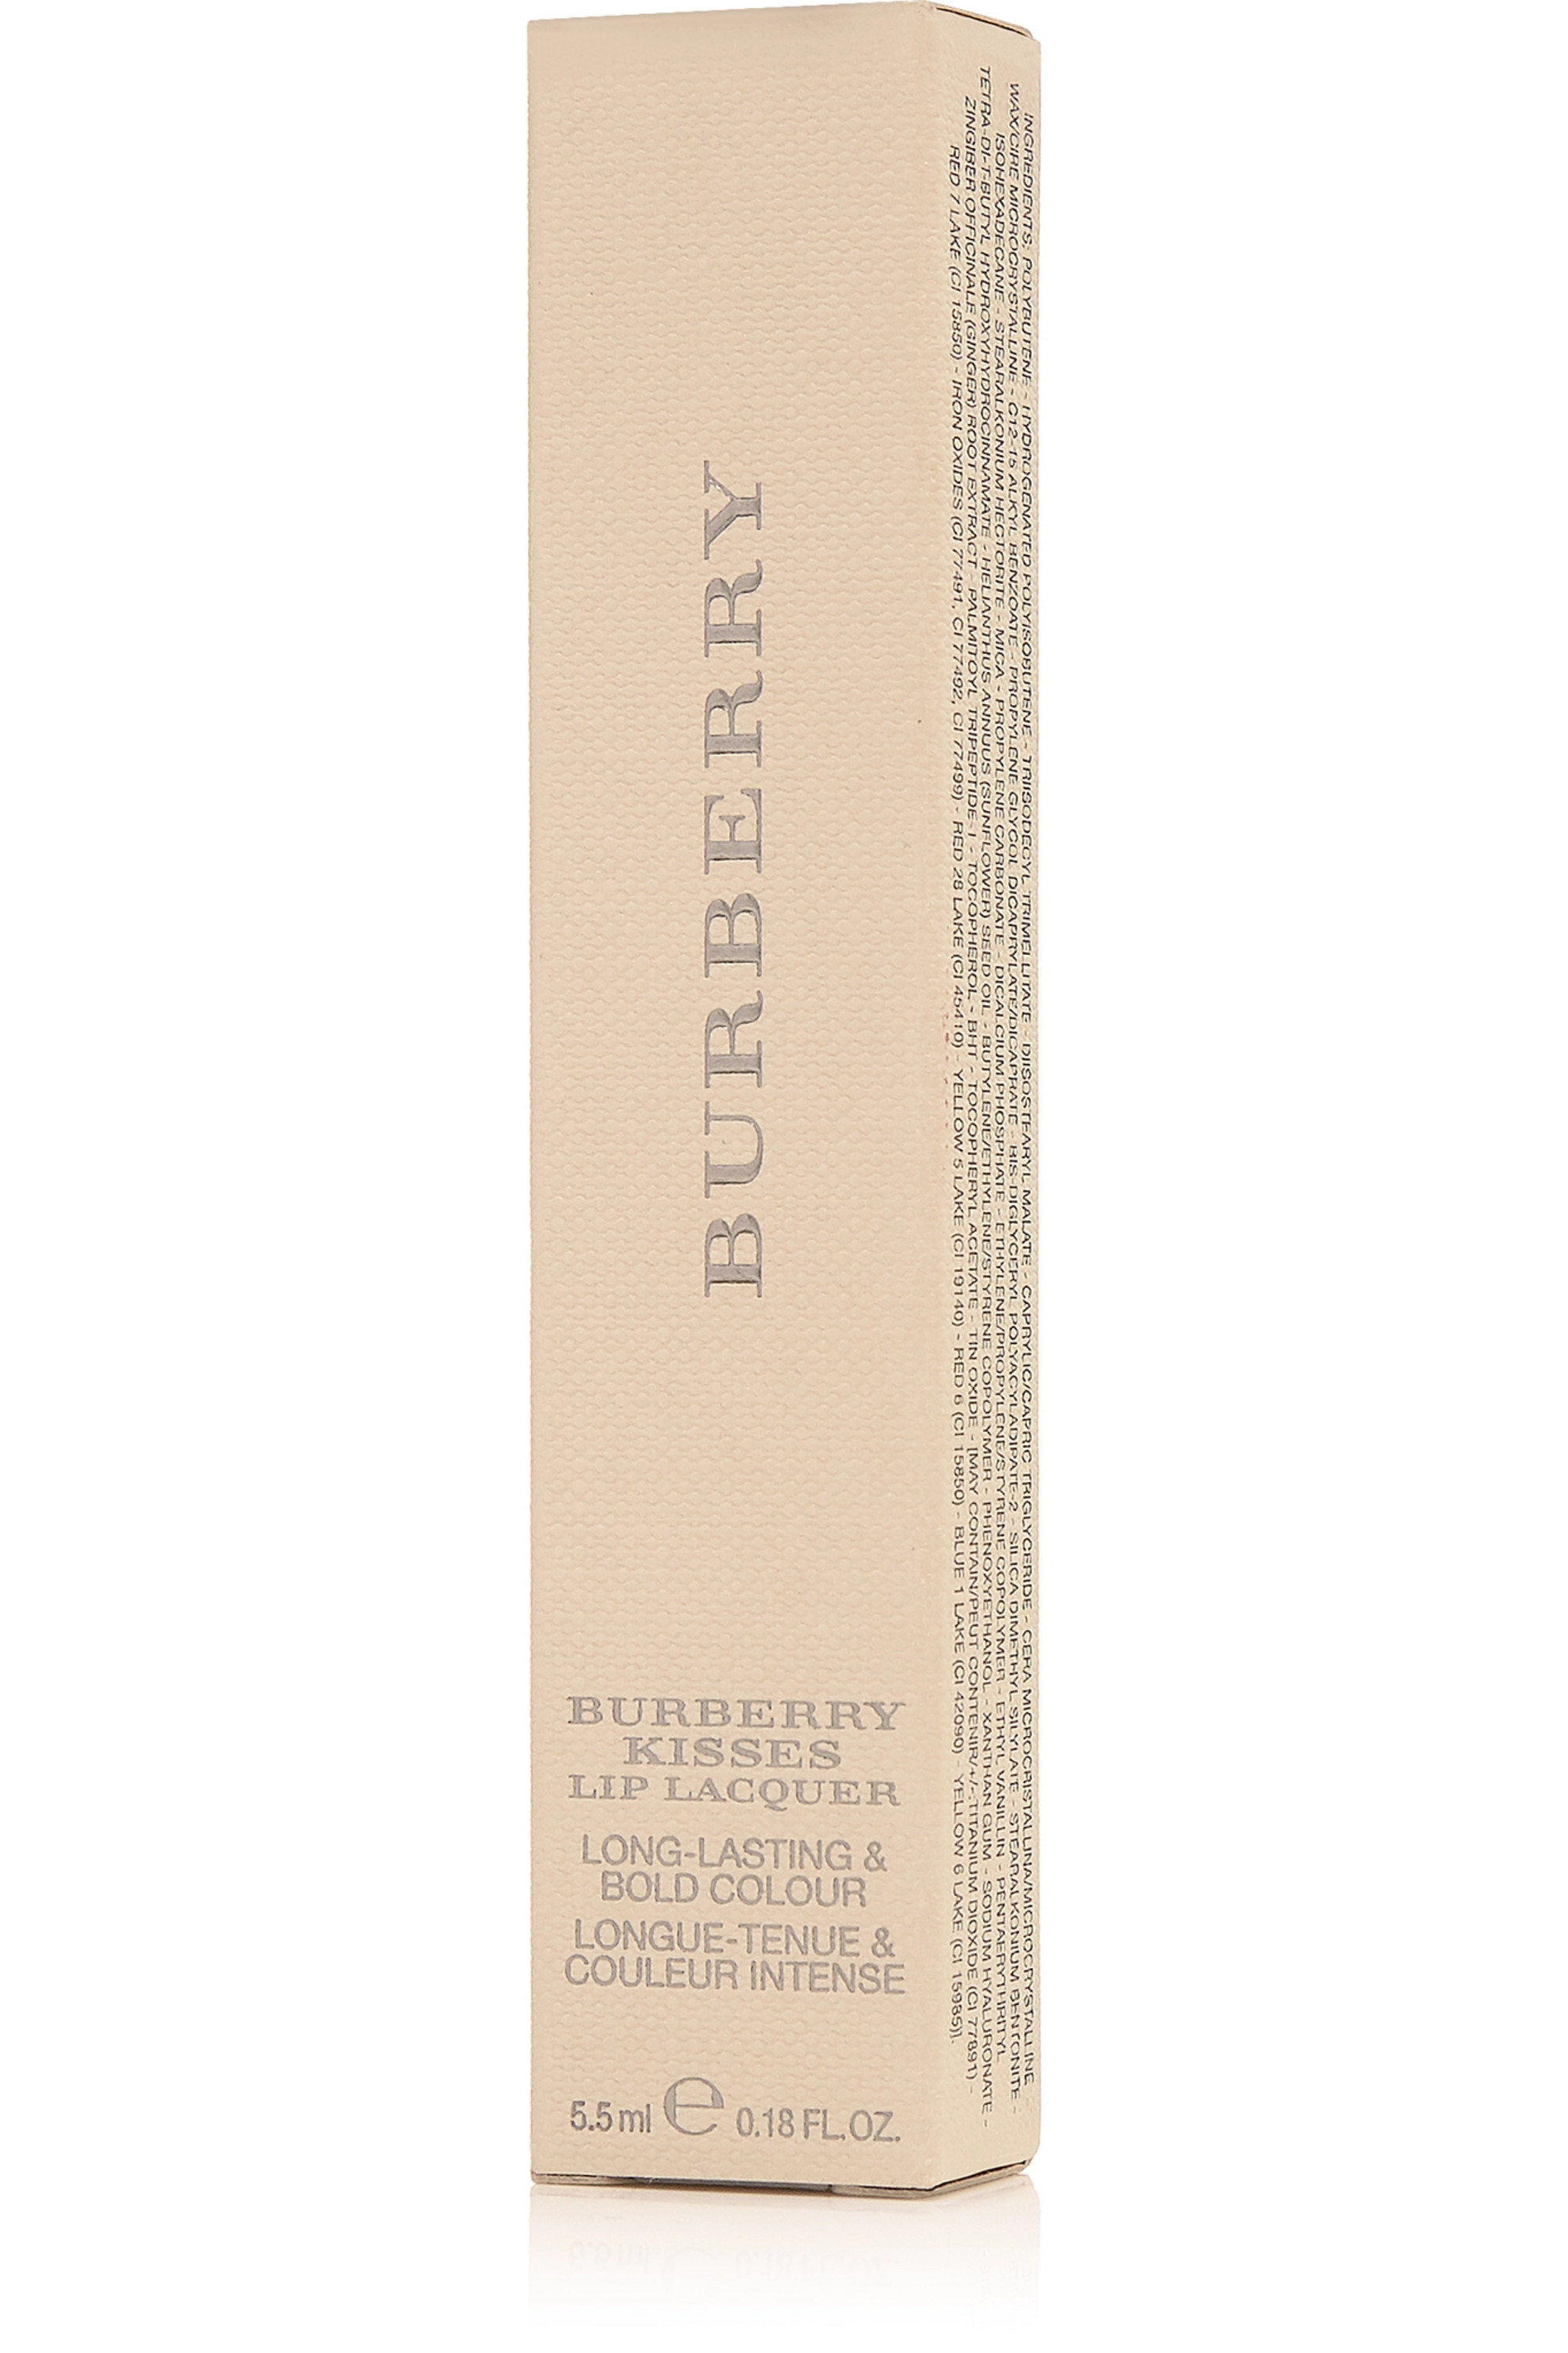 Burberry Beauty Burberry Kisses Lip Lacquer - Rosy Mauve No.75